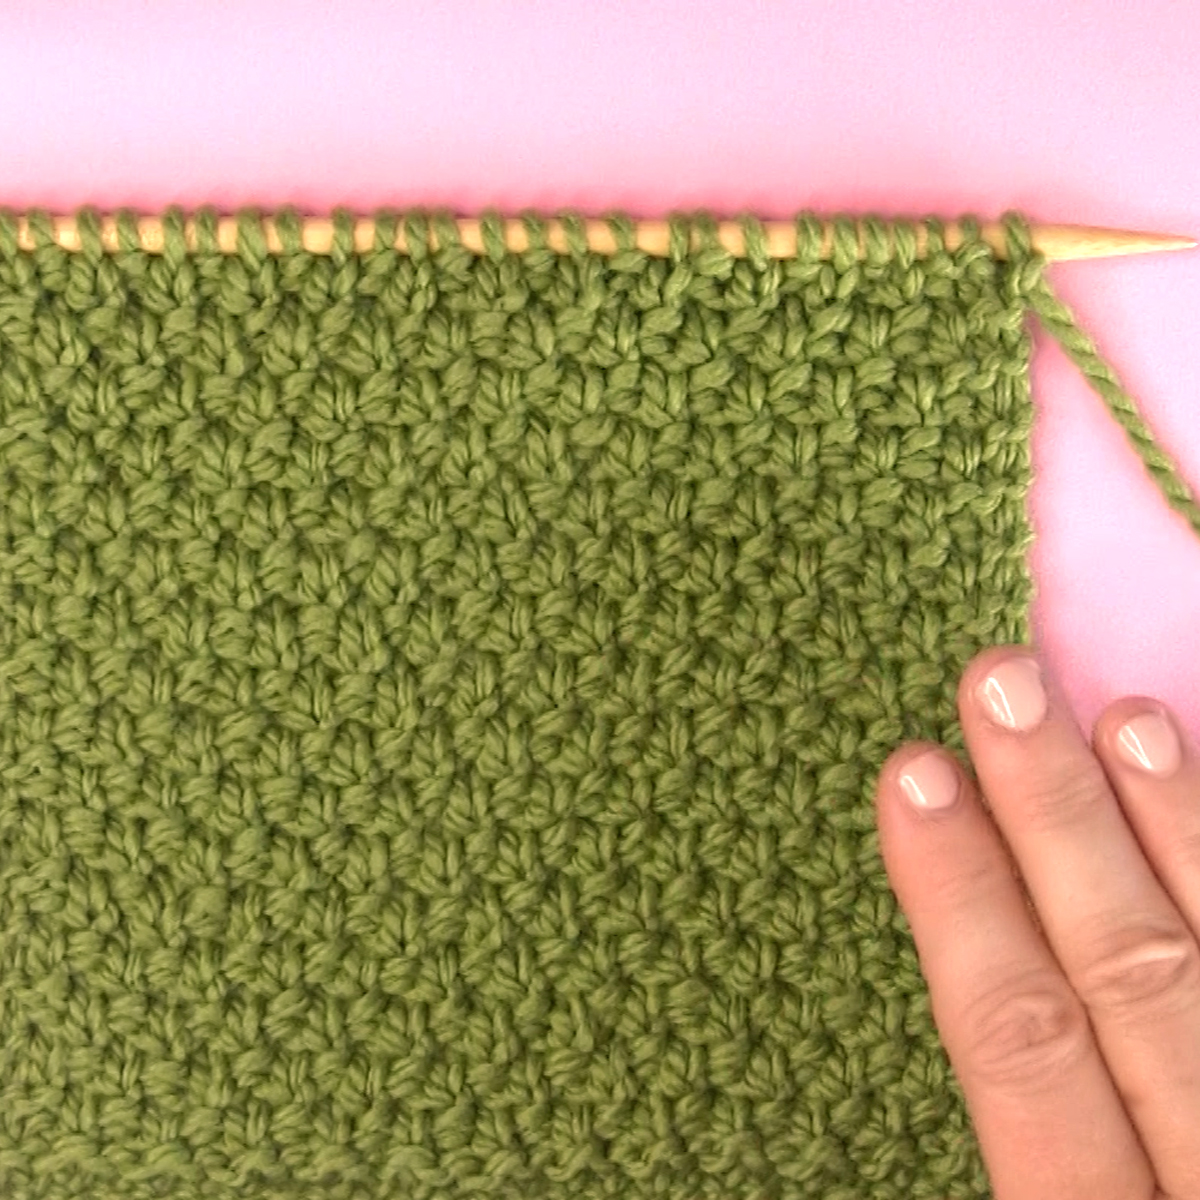 Irish Moss Knit Stitch pattern on knitting needle in green color yarn with woman's hand.